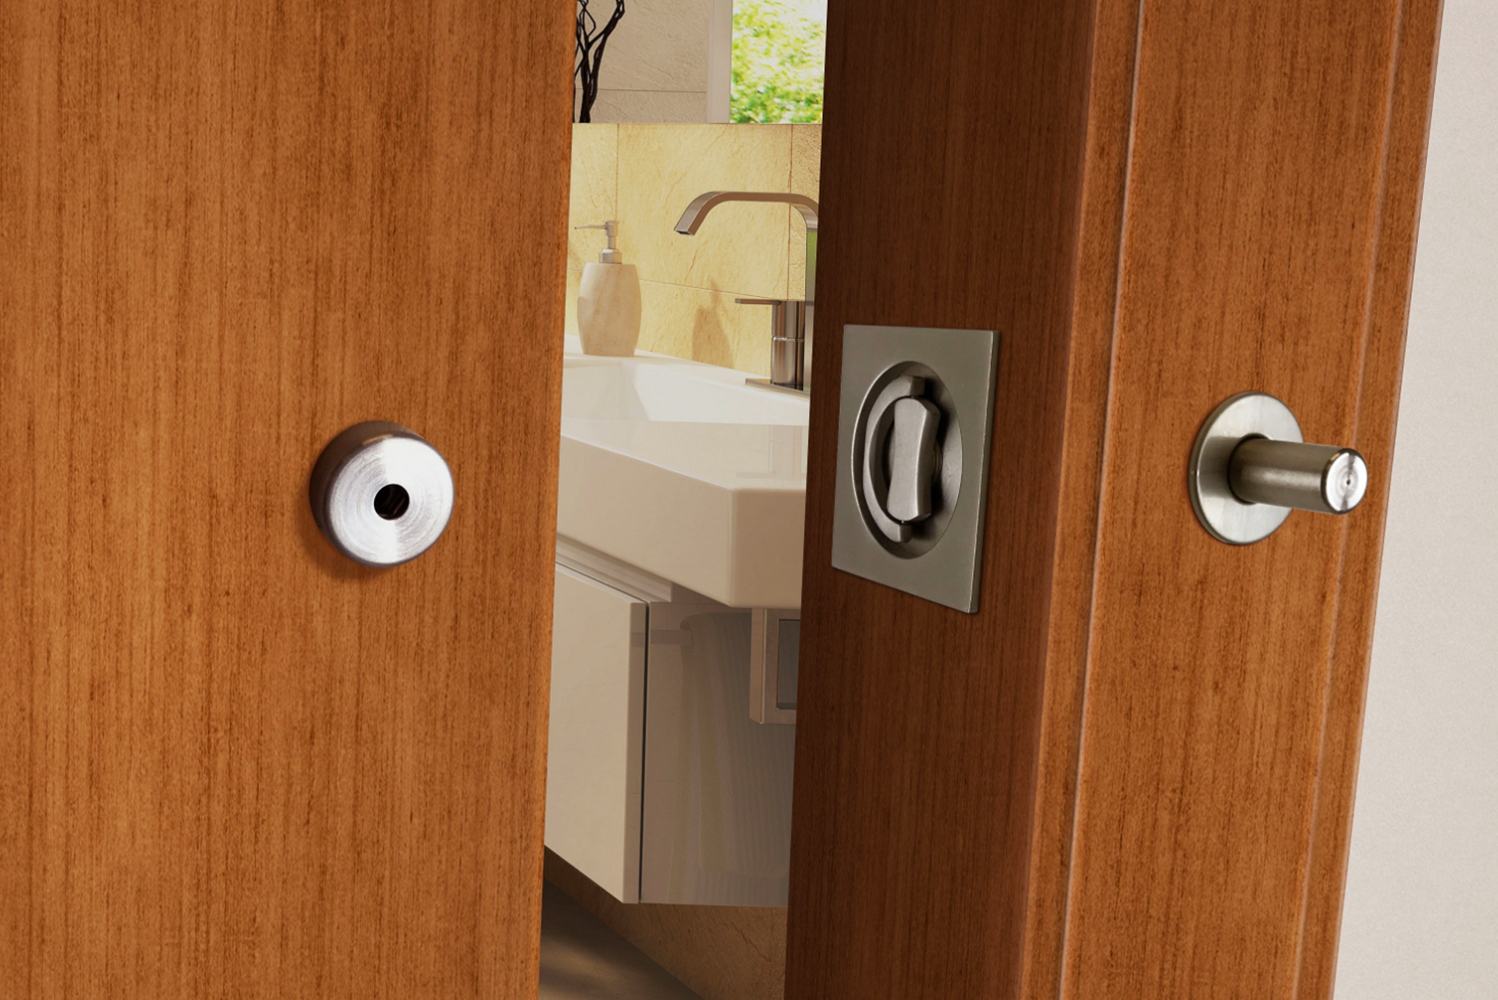 A safety release allows the lock to be disengaged from the outside in case of an emergency.